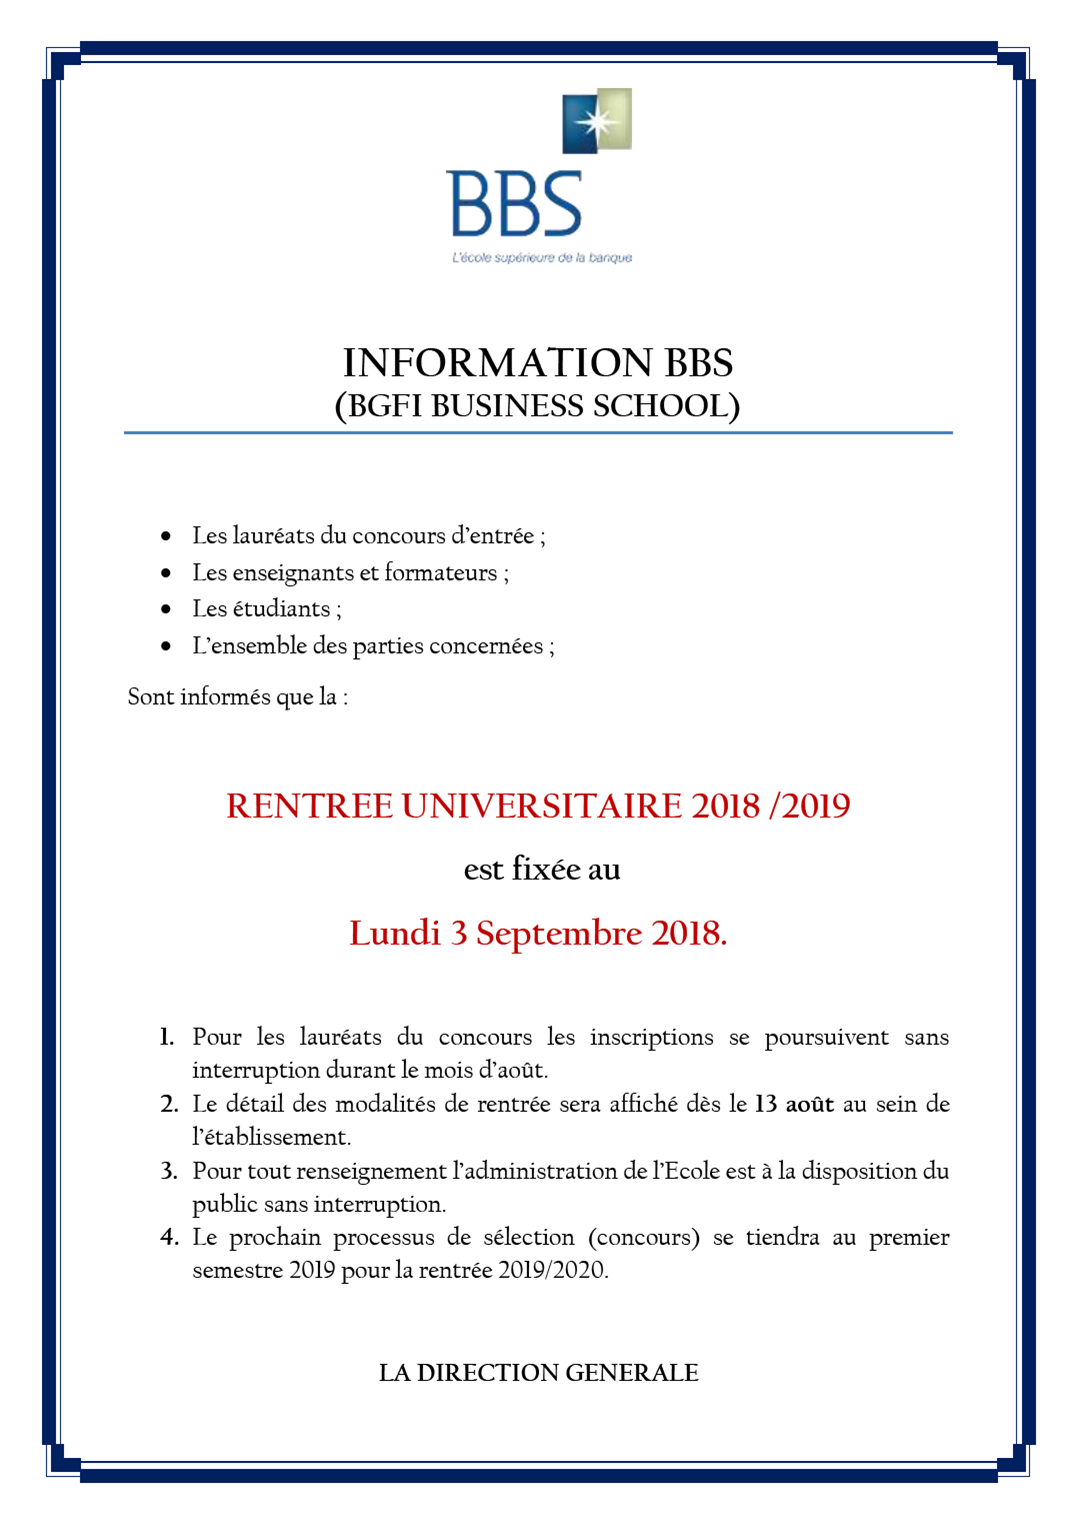 https://bbs-school.com/files/information_bbs_rentree_2018_19_0312.png